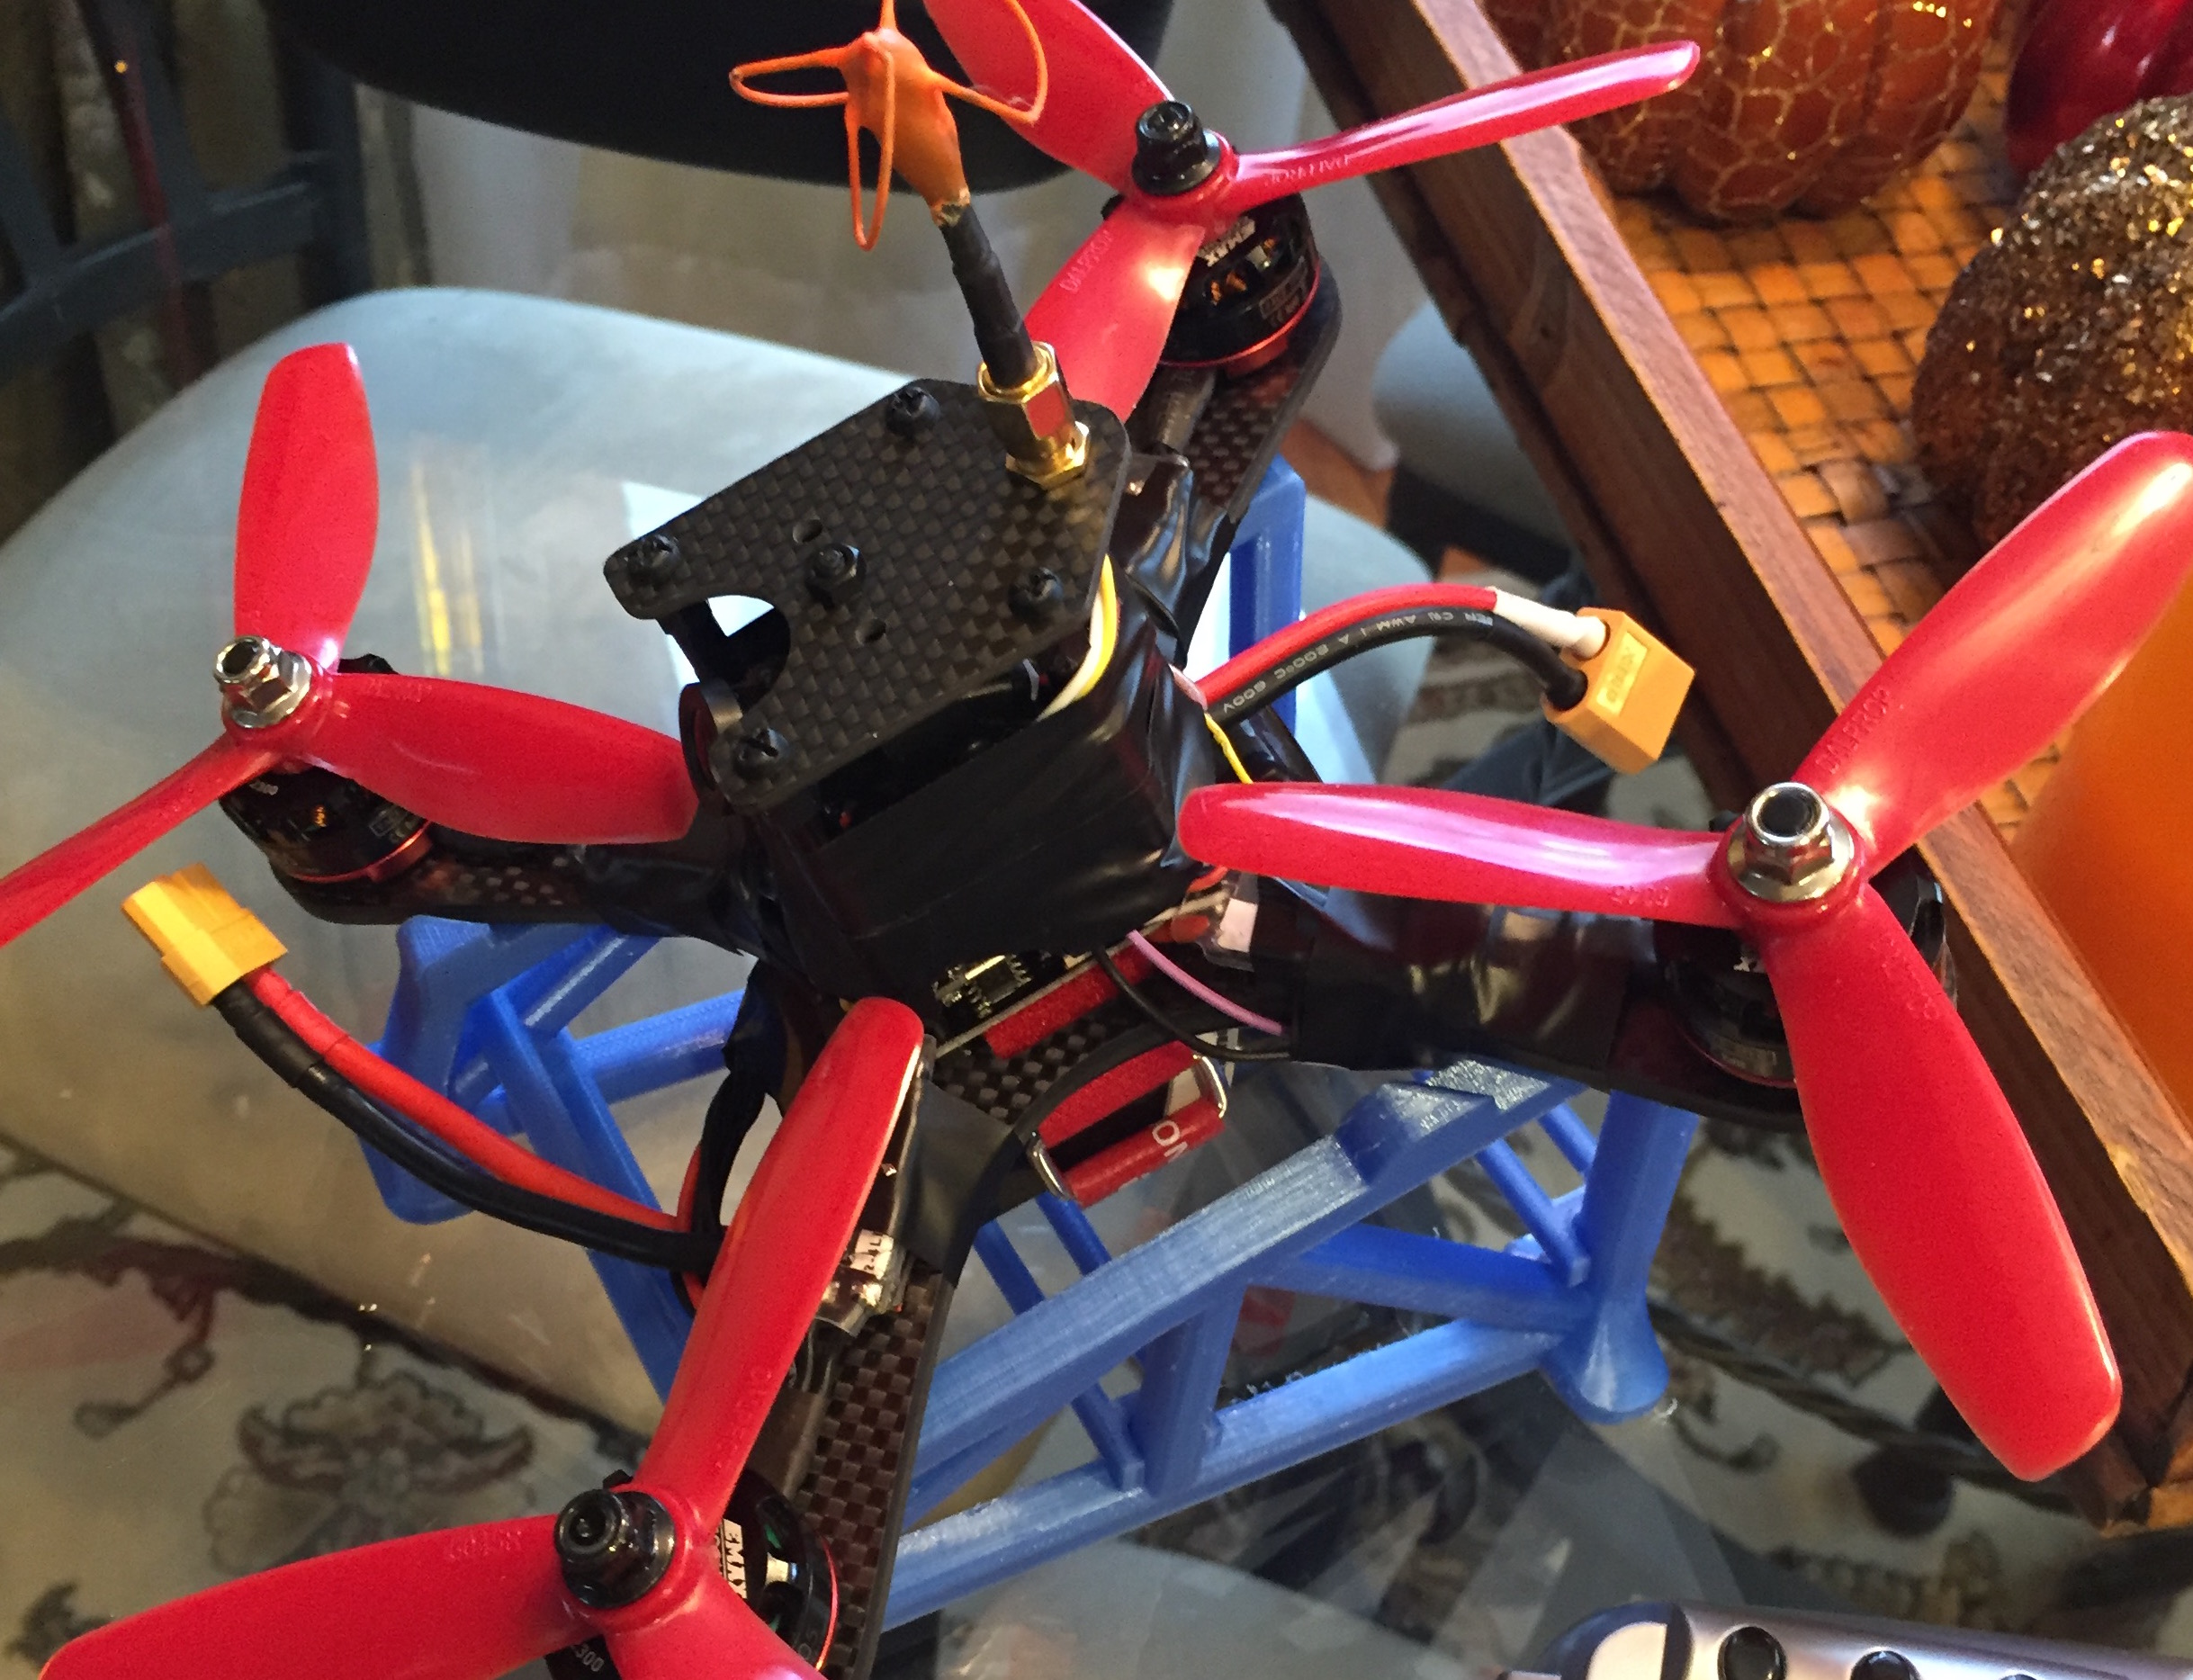 3d printed FPV Quadcopter Launch Pad for bottom battery quads